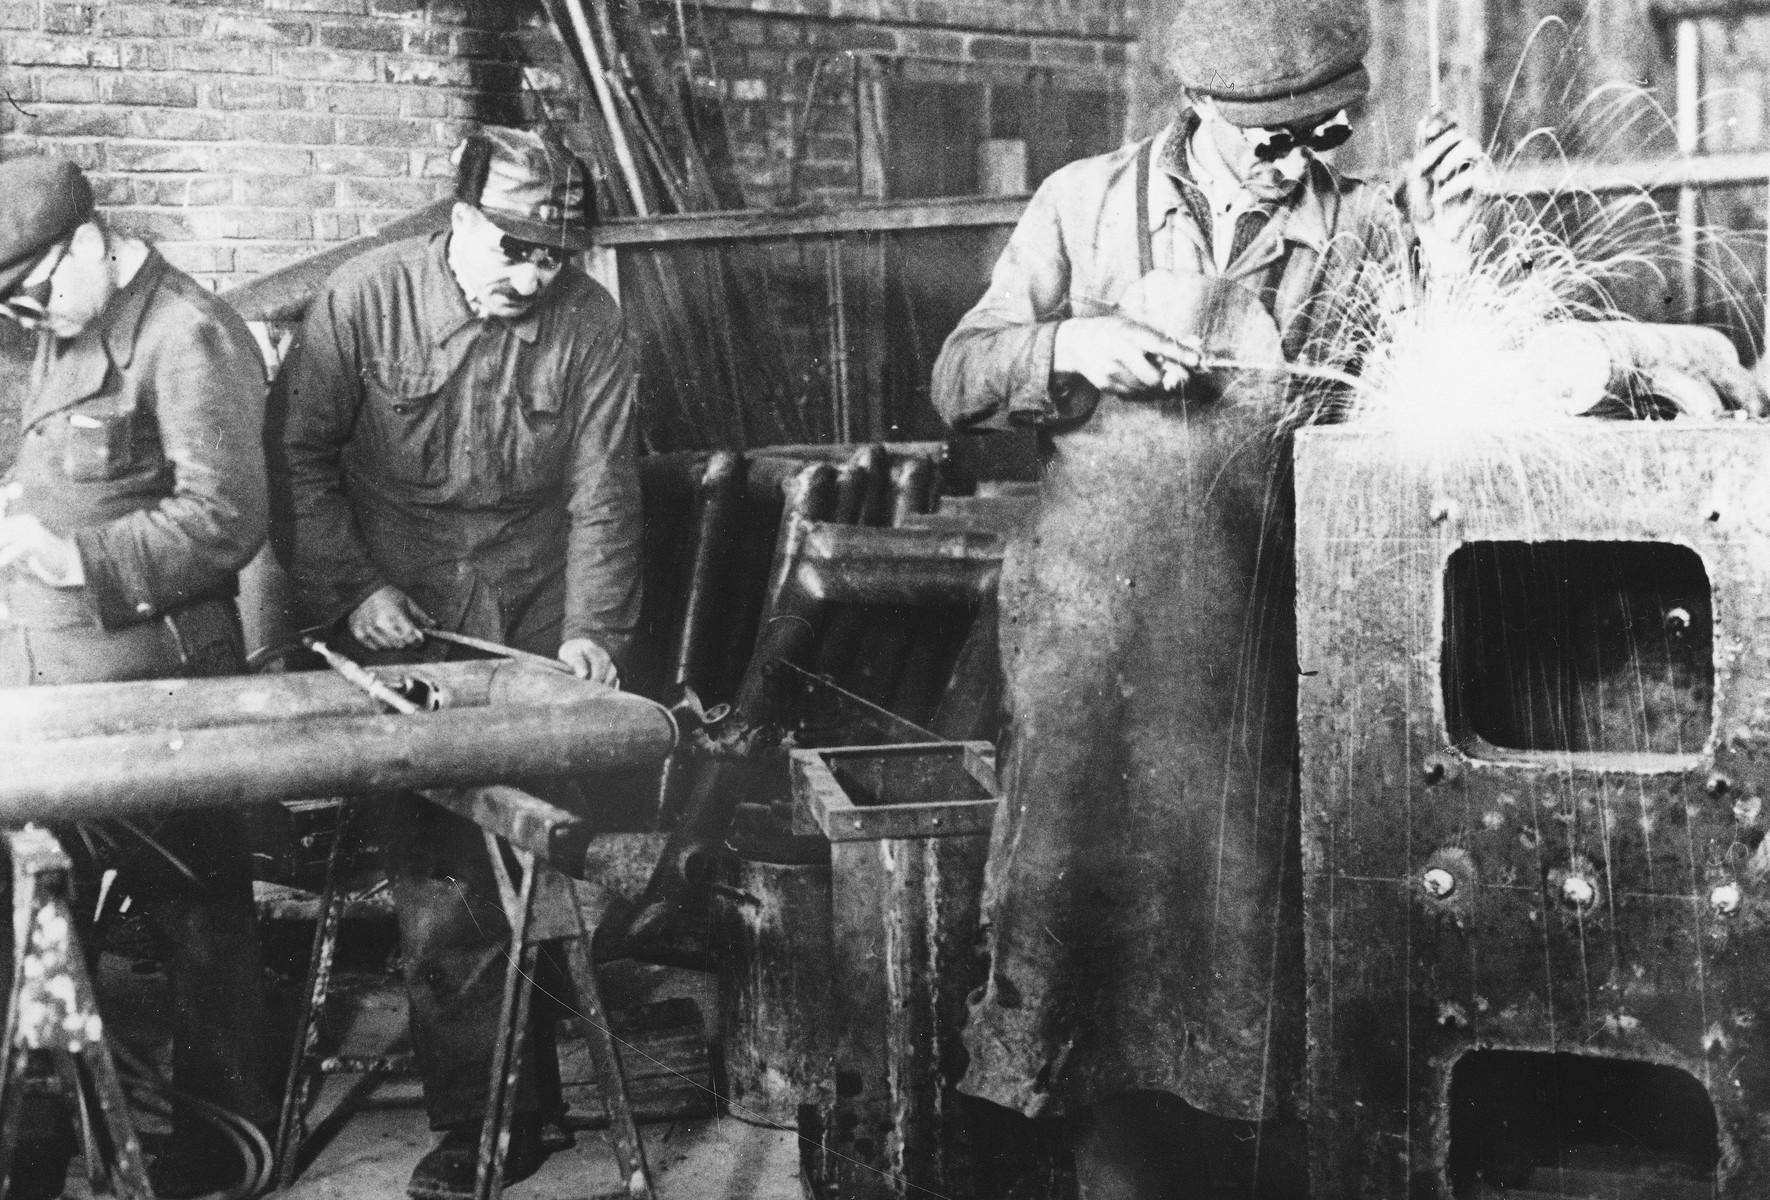 Prisoners weld metal at a Slovak labor camp.